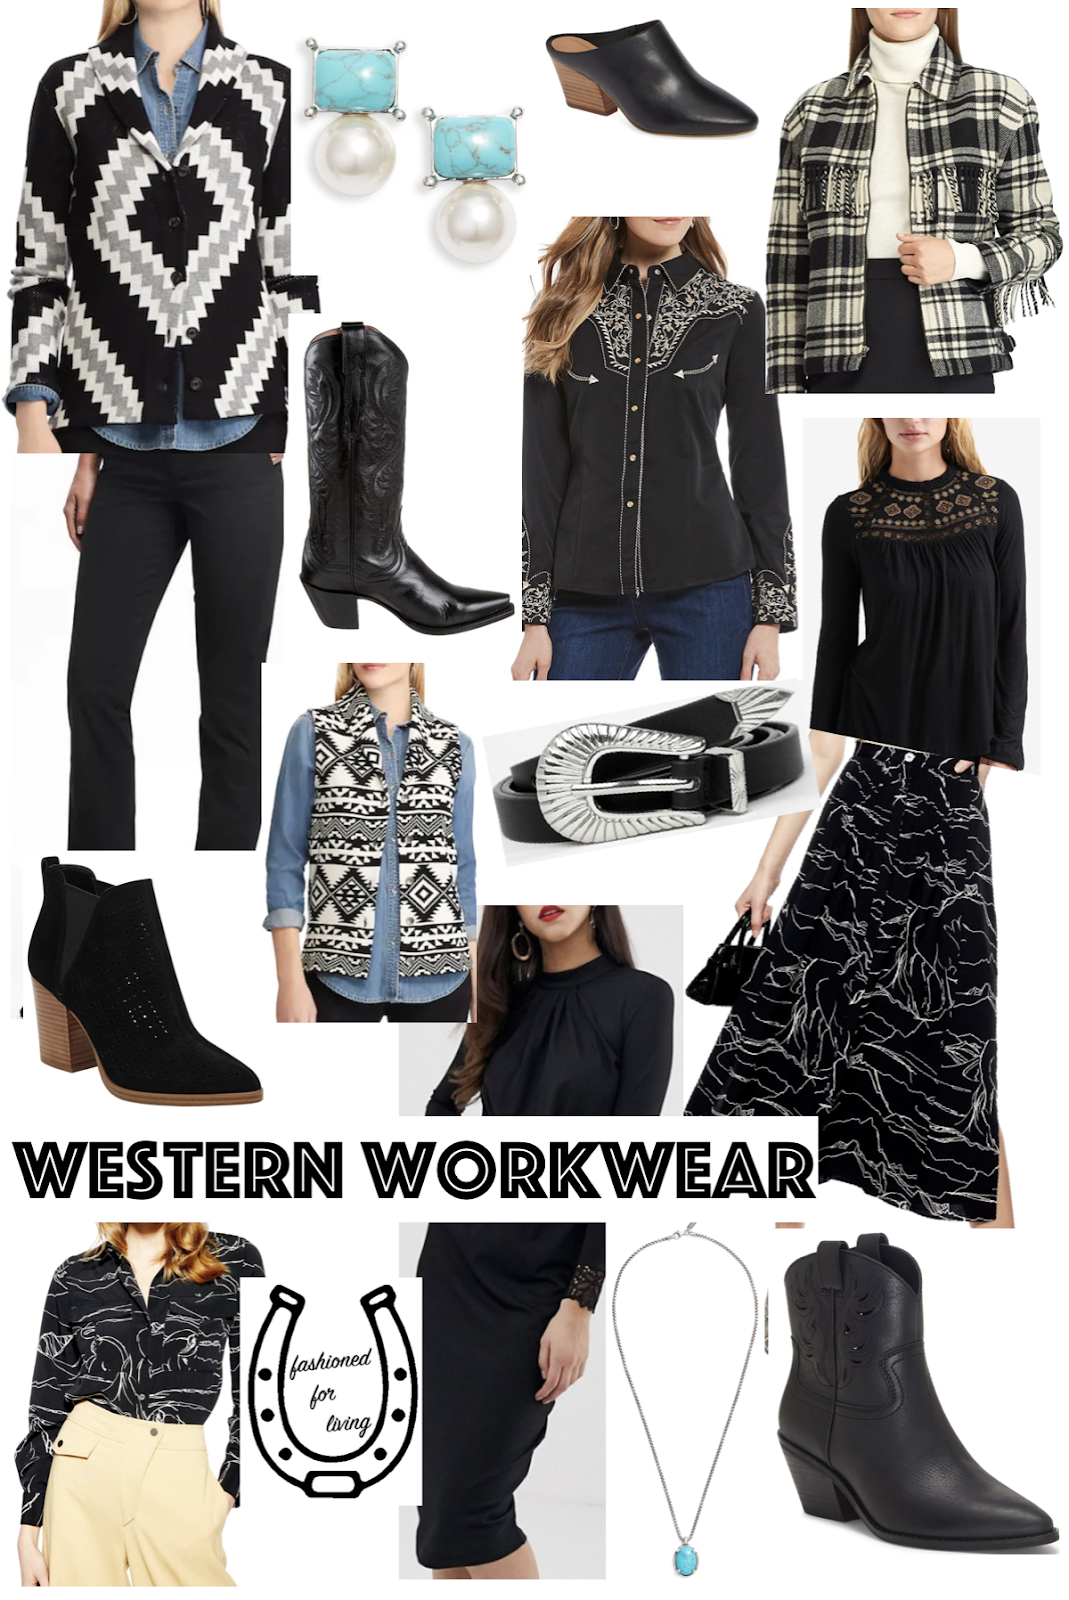 western workwear outfit inspiration